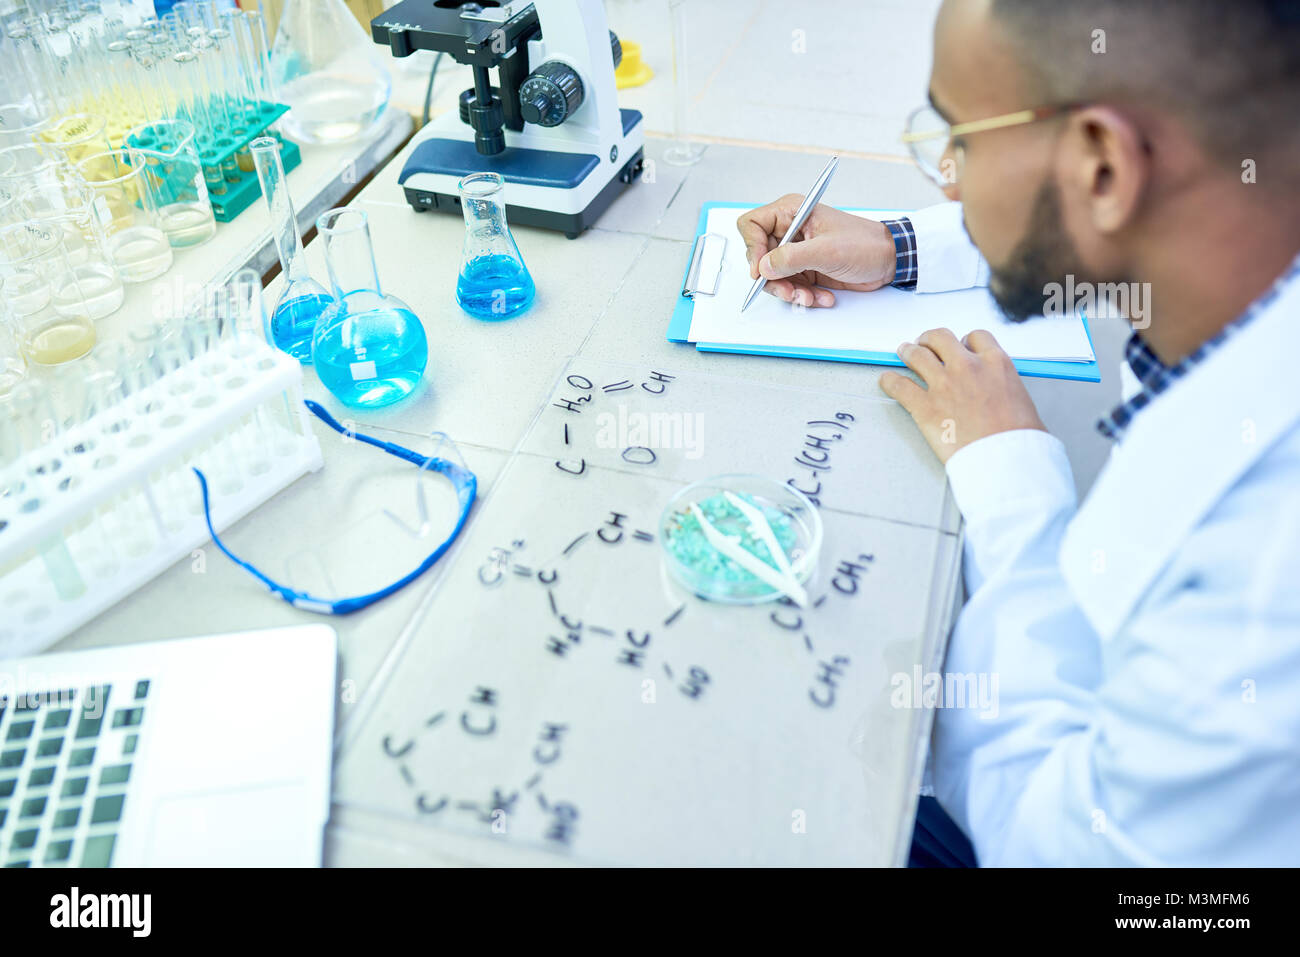 Middle-Eastern Scientist Working in Lab - Stock Image